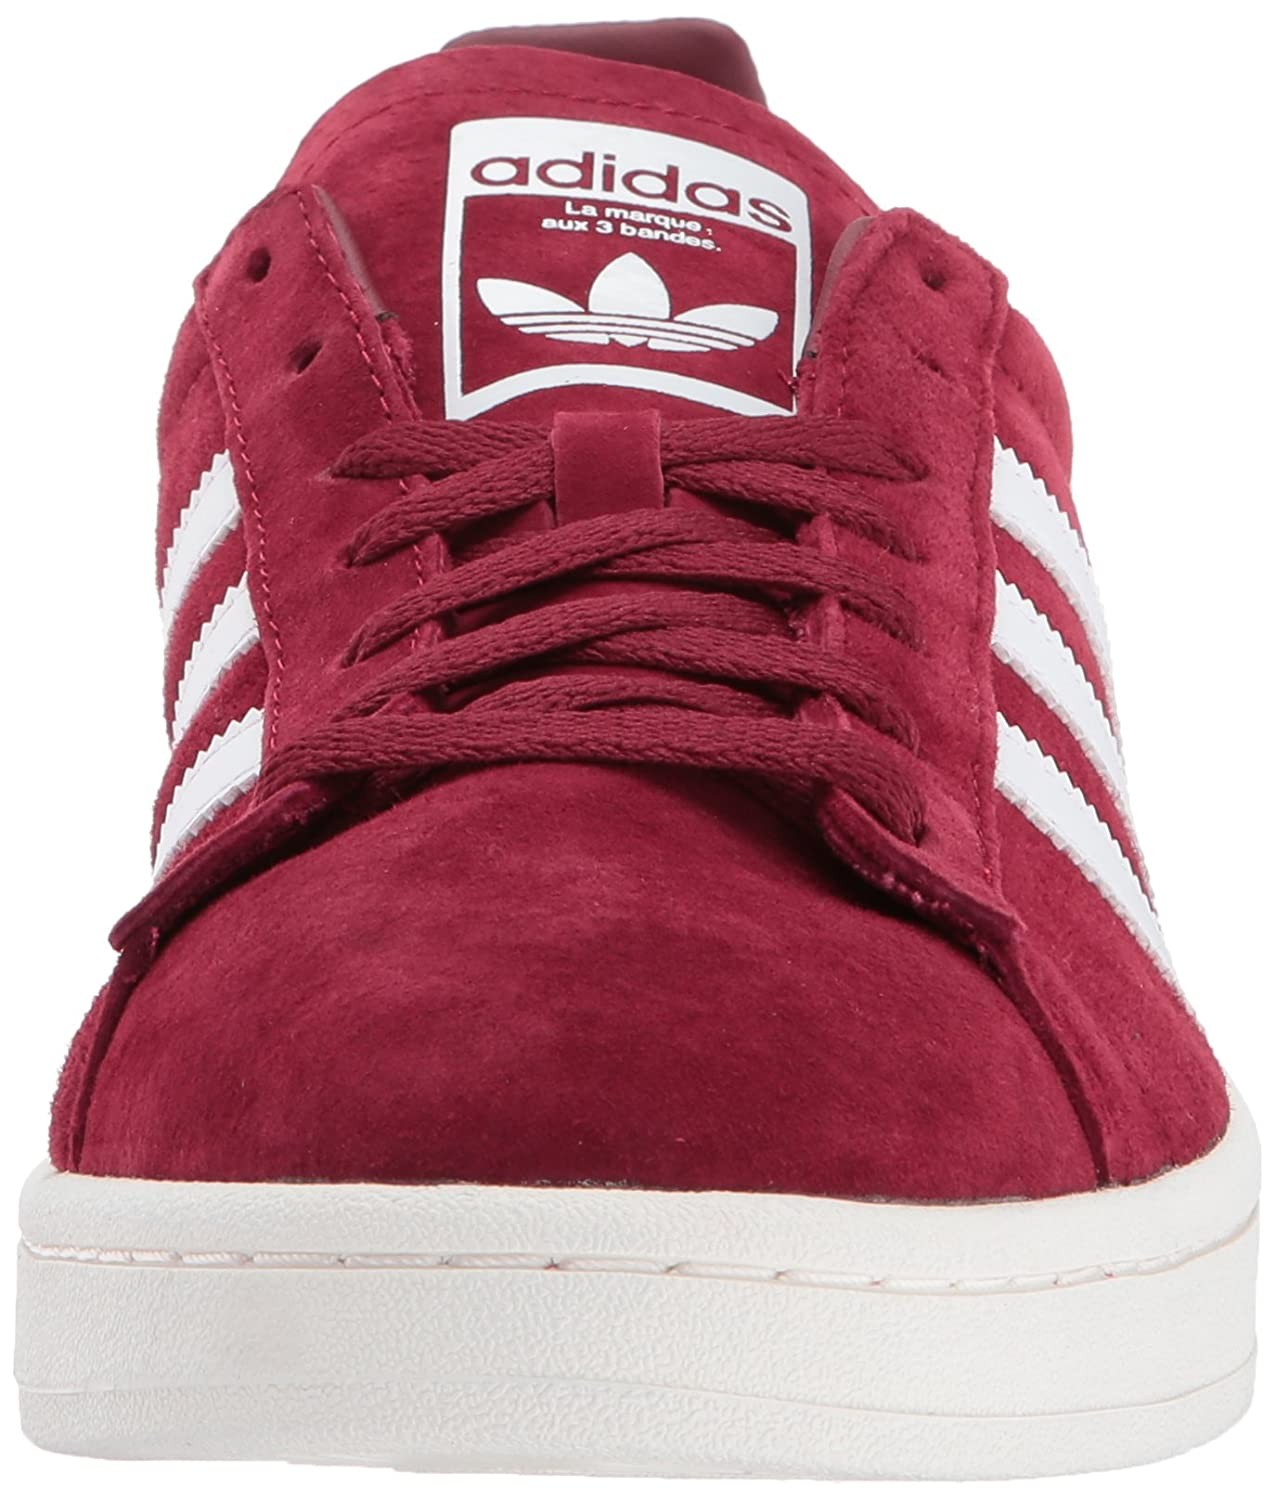 Adidas-Campus-Men-039-s-Casual-Fashion-Sneakers-Retro-Athletic-Shoes thumbnail 27